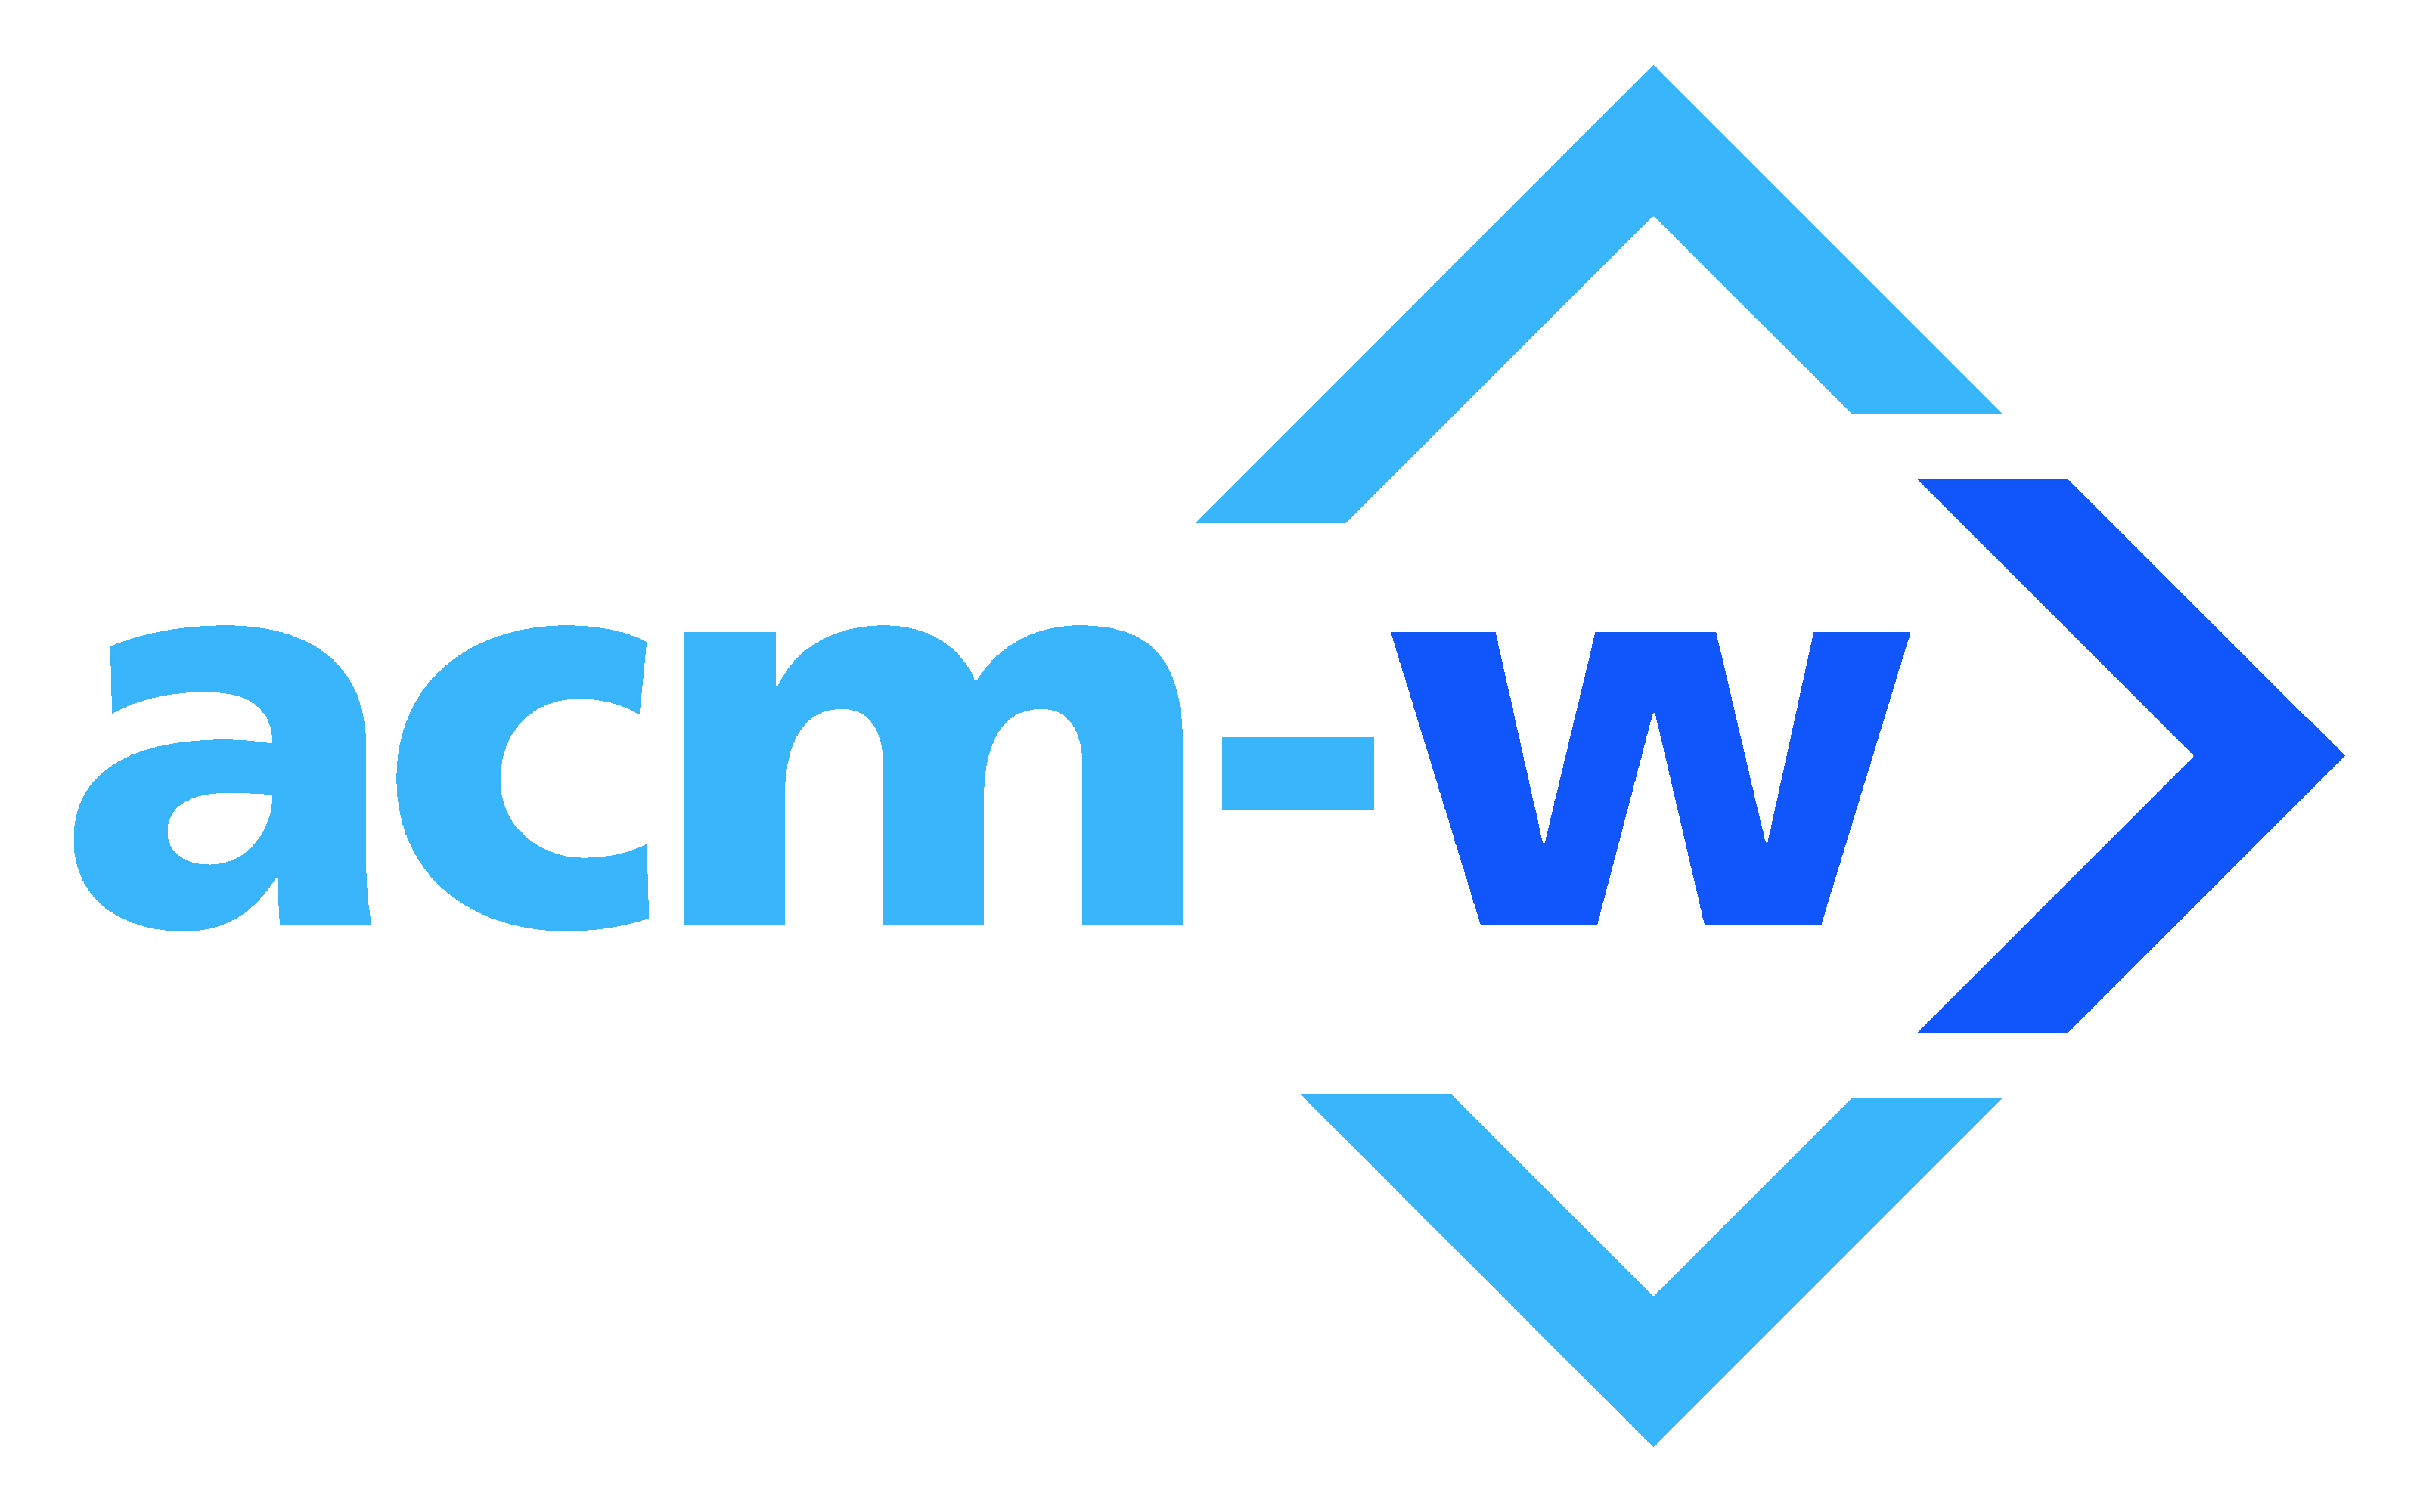 ACMW-hi-res-logo-noText-transparent